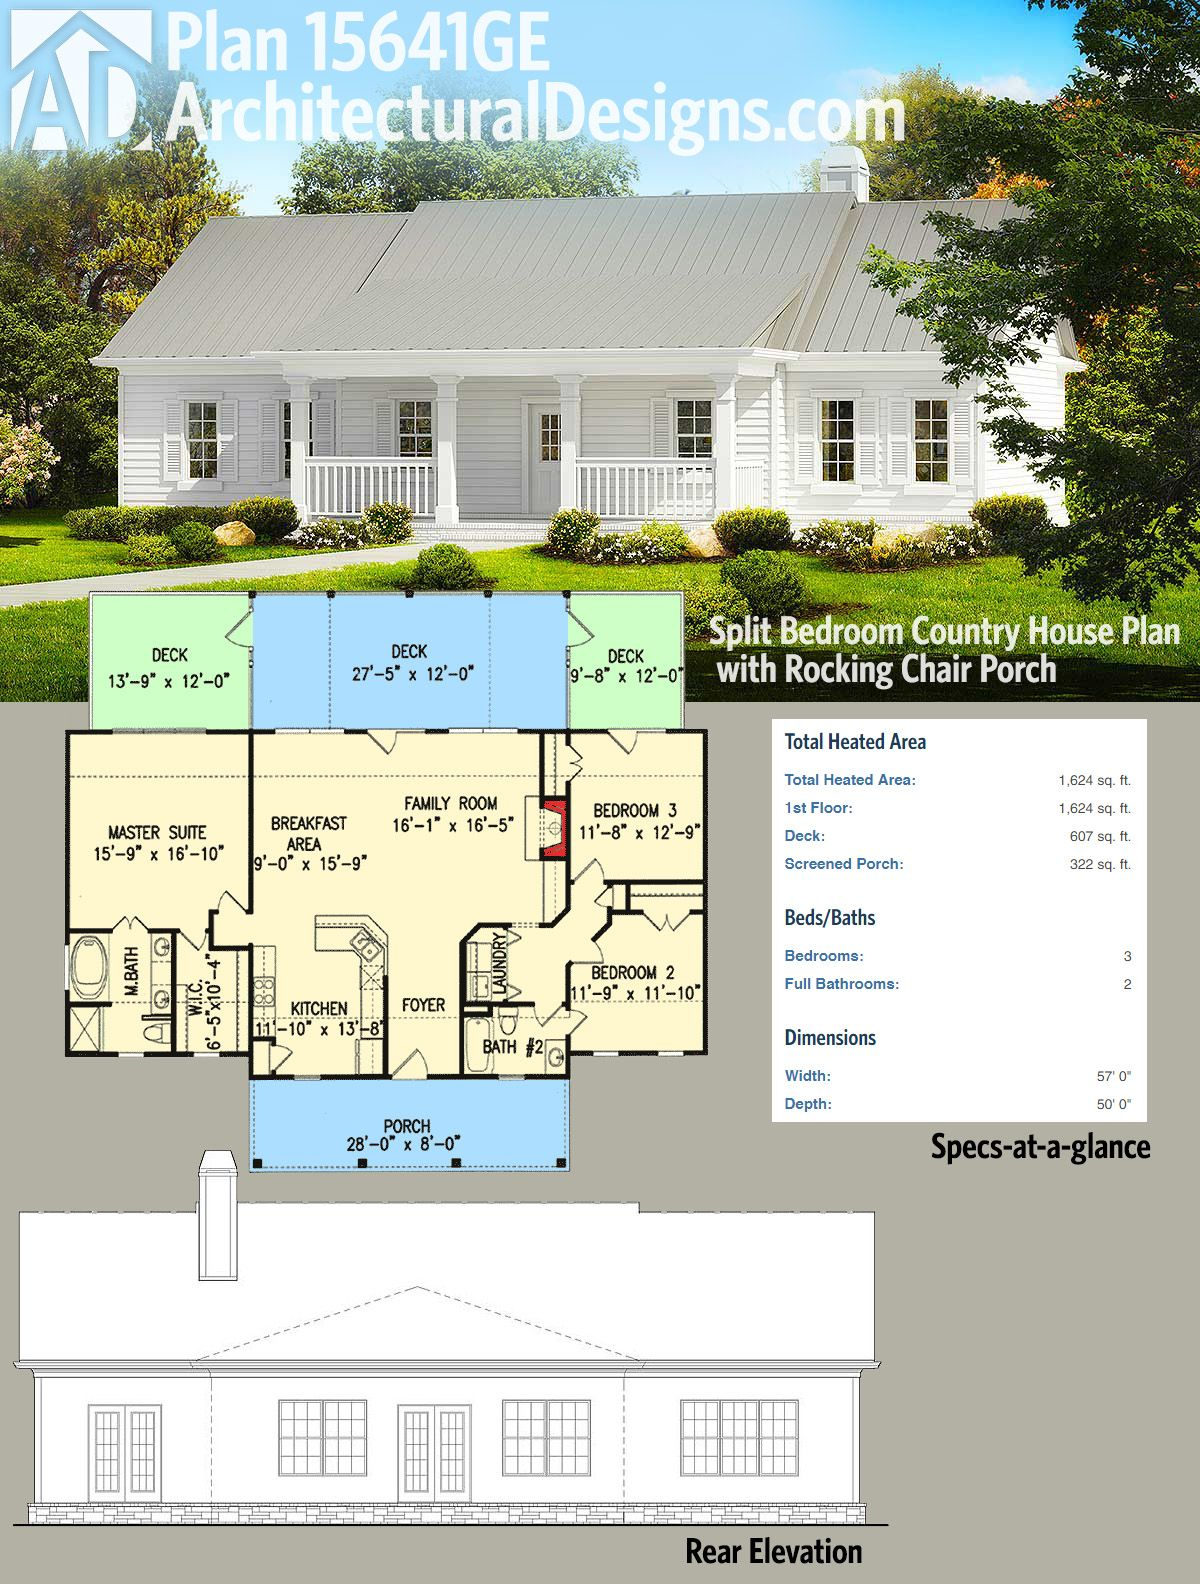 Architectural designs country house plan ge gives you beds in  split bedroom layout and great rocking chair front porch also cottage with outdoor rh pinterest